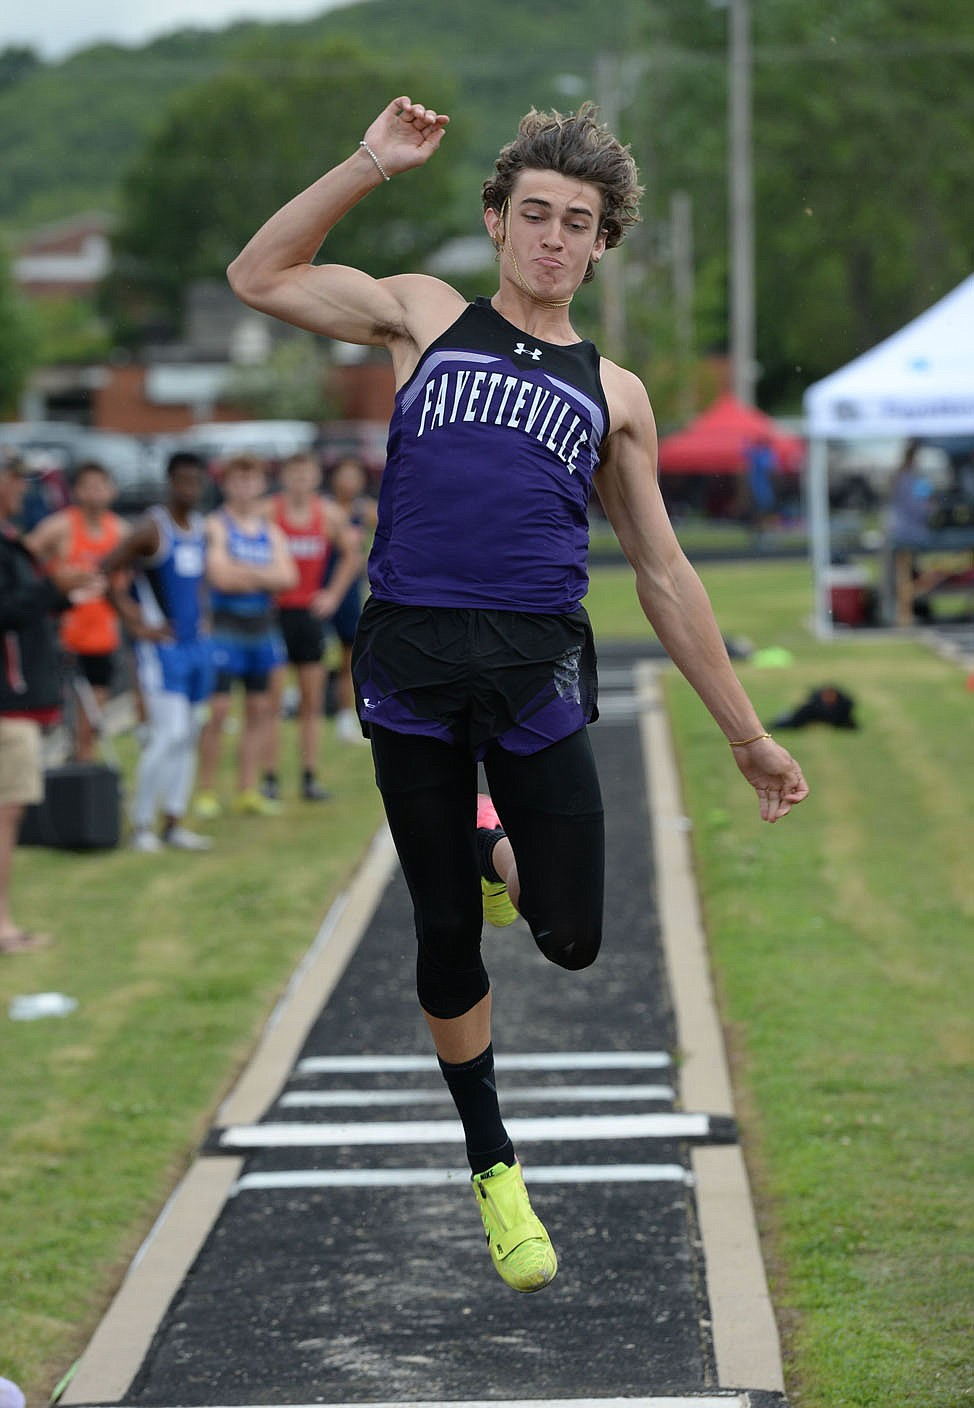 Sam Hurley of Fayetteville was chosen as the all-NWADG boys track athlete of the year. (NWA Democrat-Gazette/Andy Shupe)